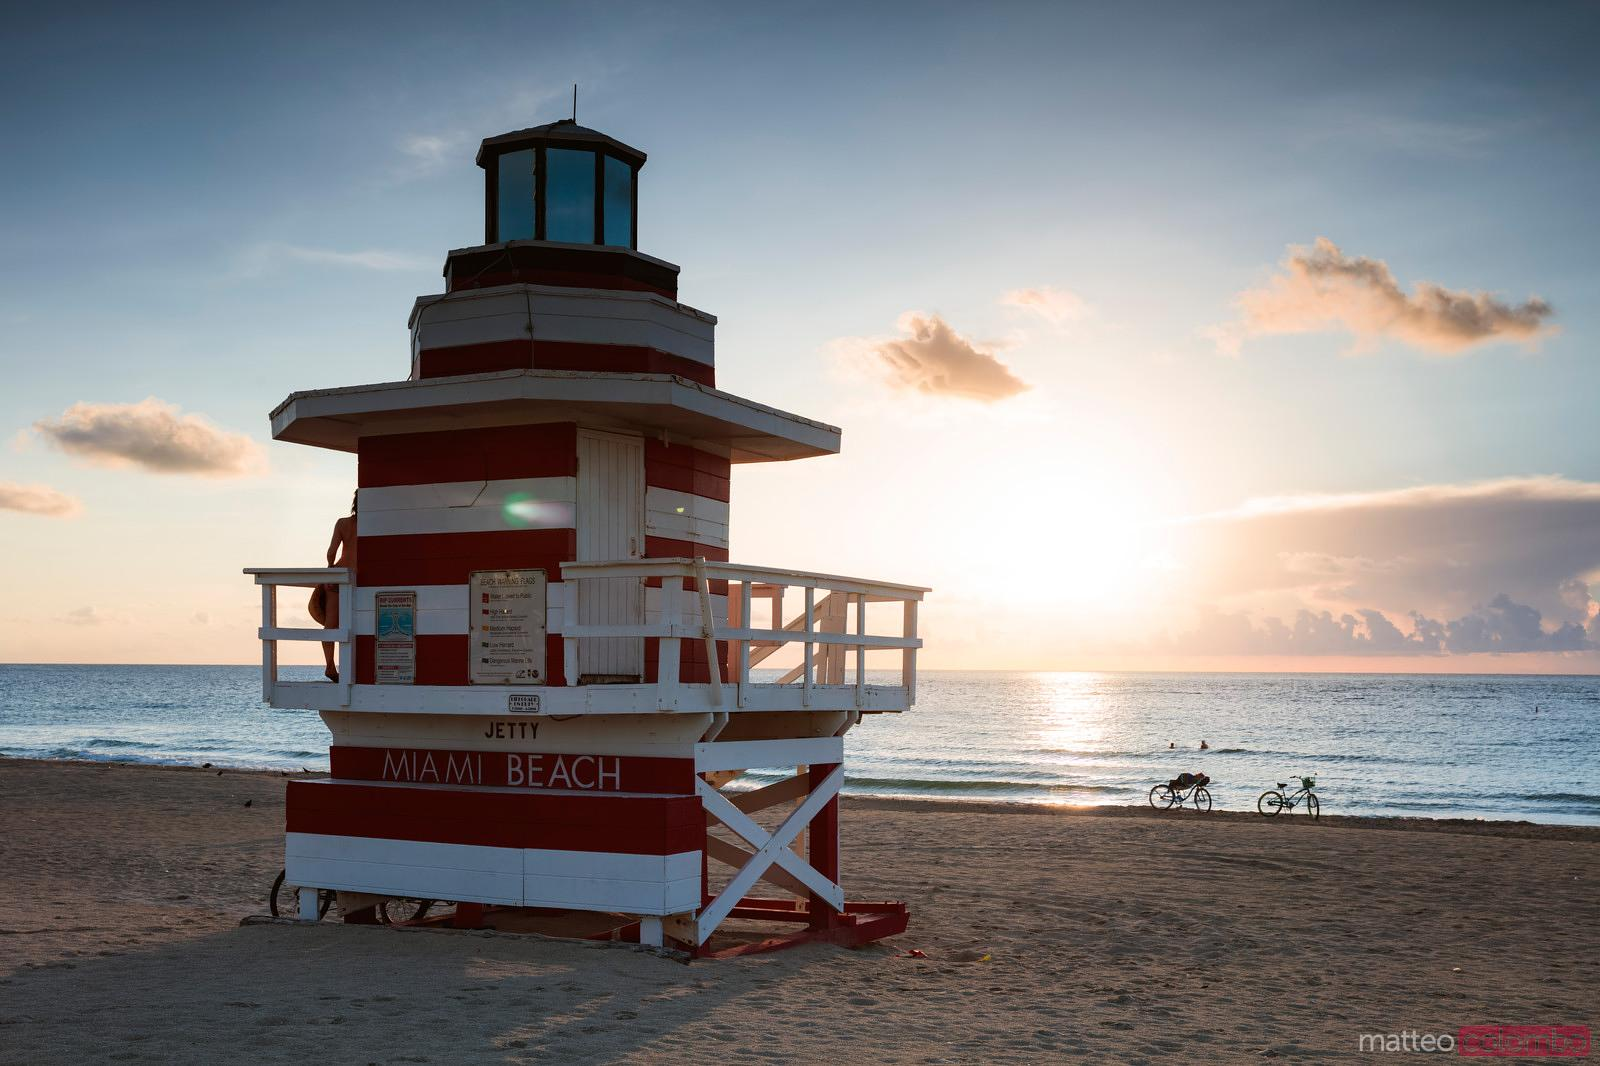 Sun rising in front of lifeguard hut, Miami beach, Florida